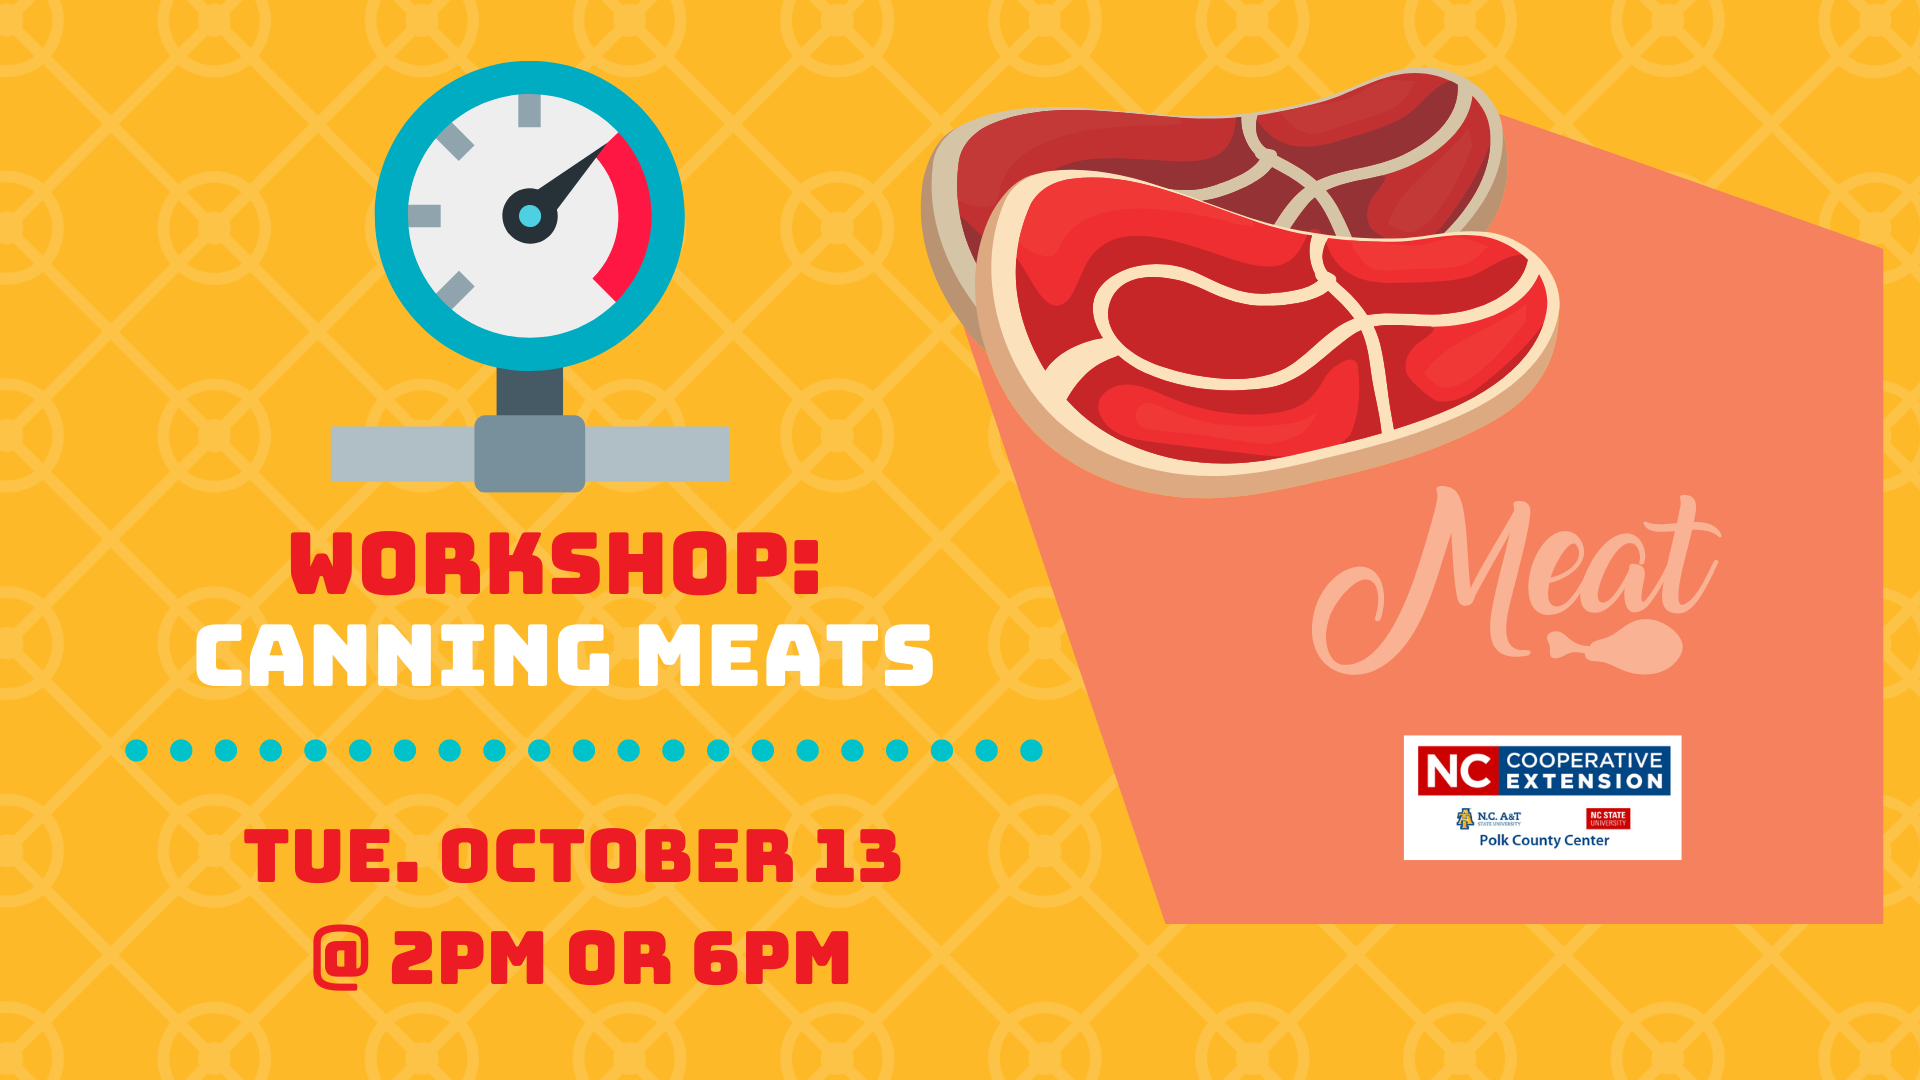 Workshop: How to Can Meats